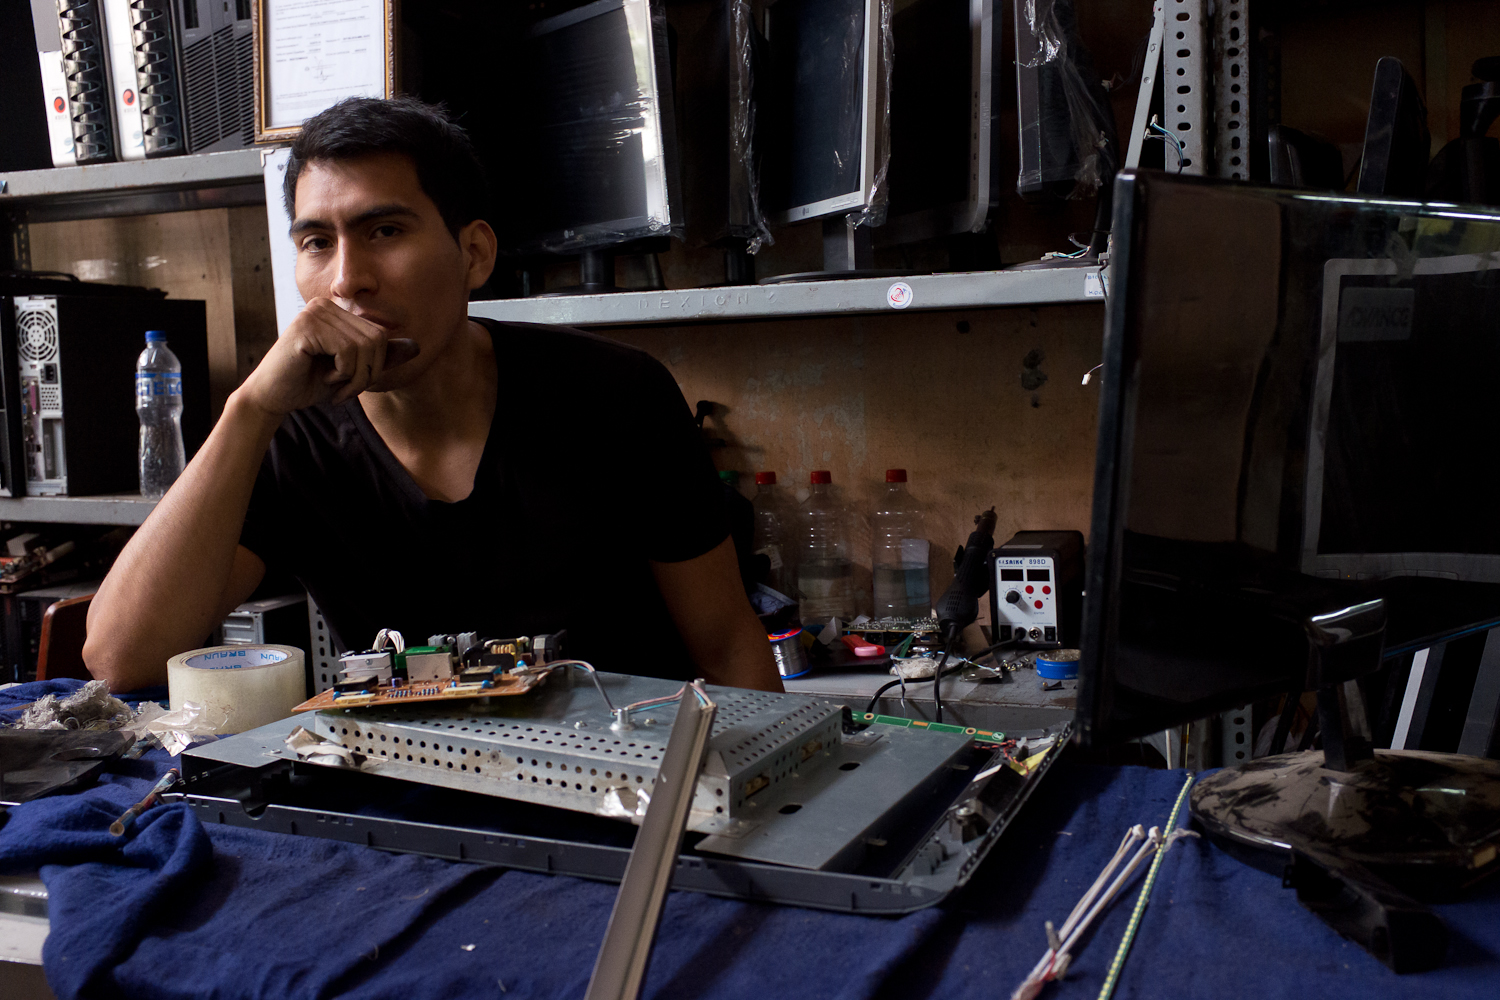 """I got my degree in graphic design, but started repairing LCDs about three years ago,"" said Richard, who opened his own shop on Leticia one year ago."